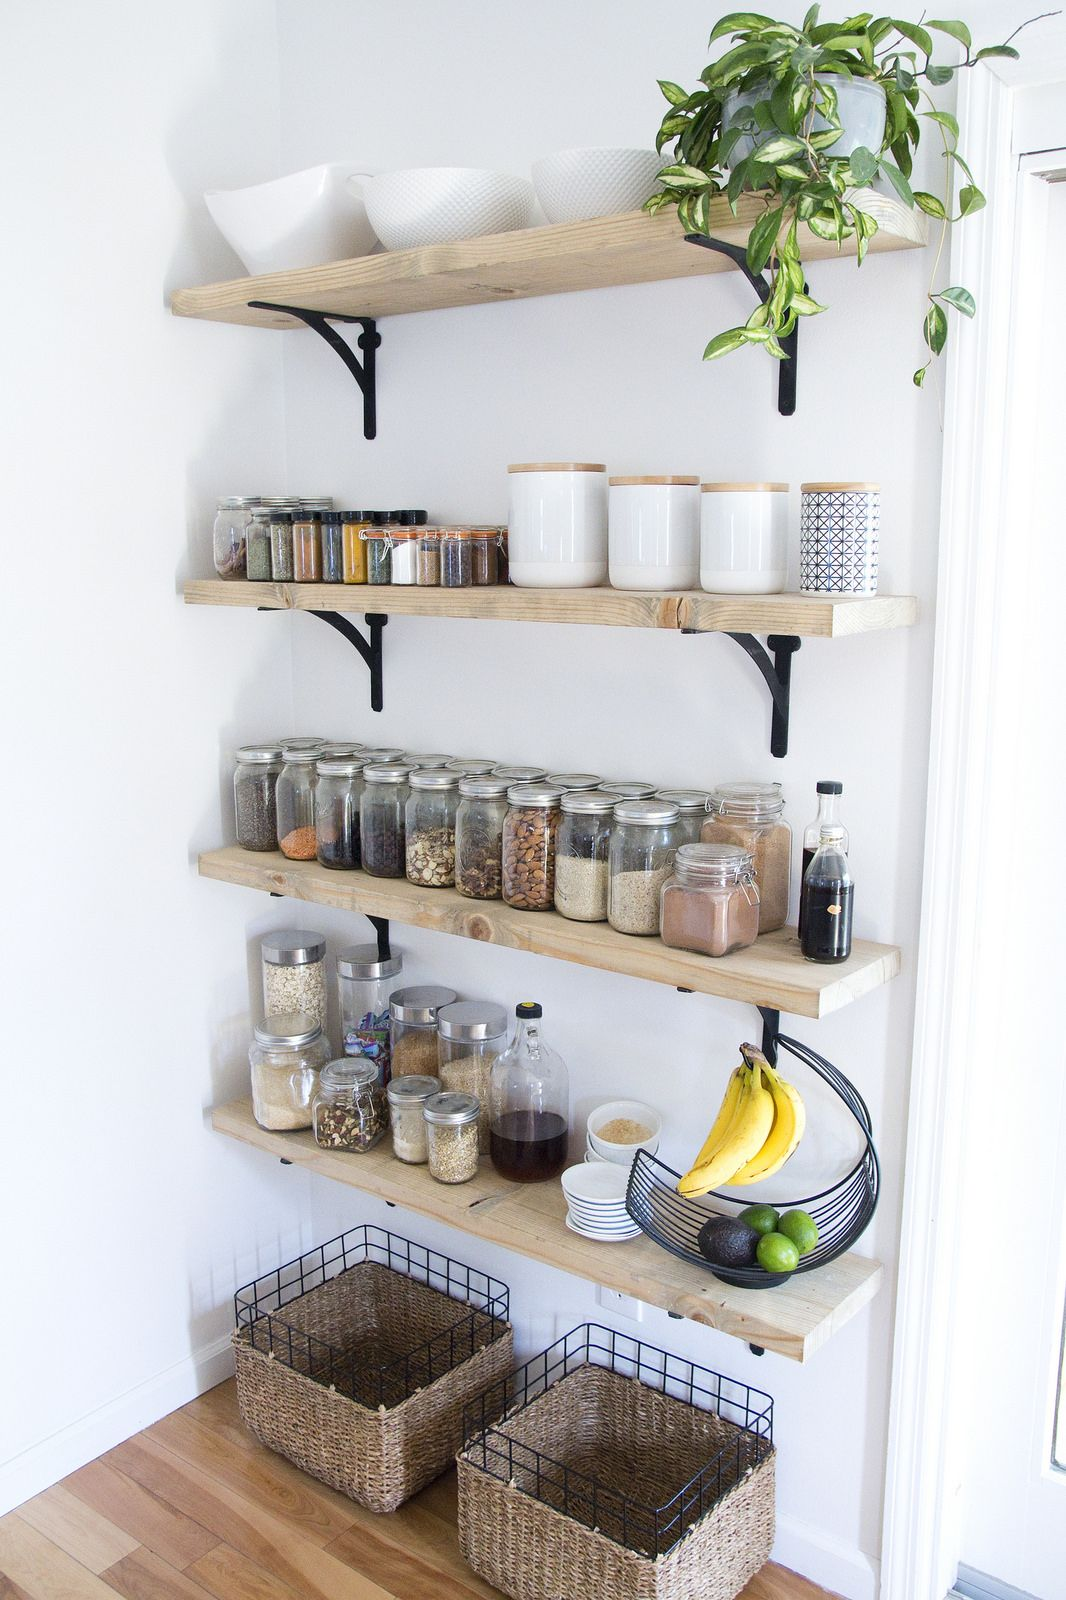 8 tips for creating successful open shelving and a pantry via jenloveskev home ideas. Black Bedroom Furniture Sets. Home Design Ideas